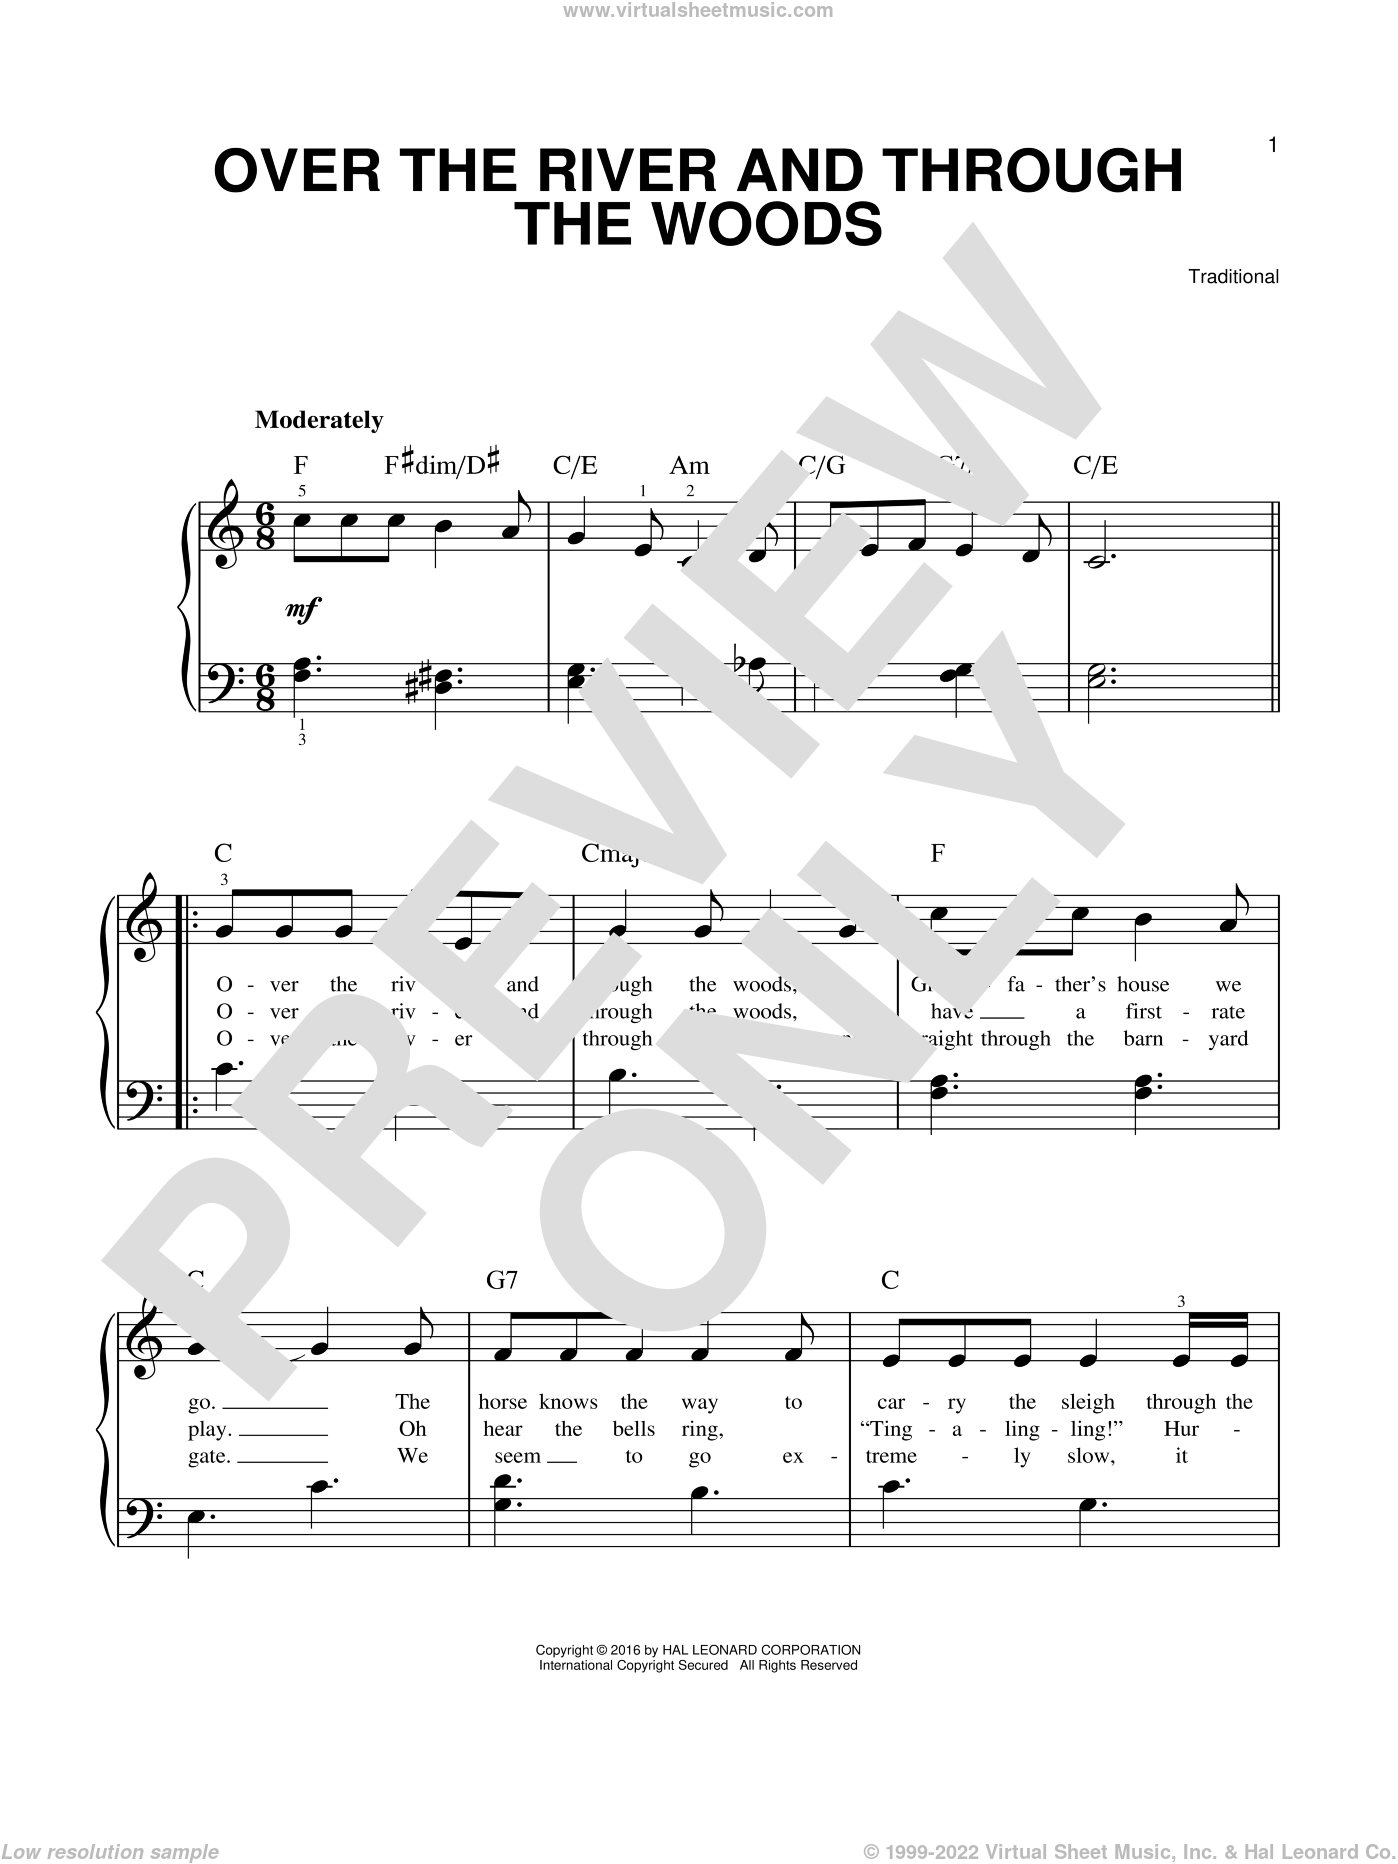 Over The River And Through The Woods sheet music for piano solo, easy skill level